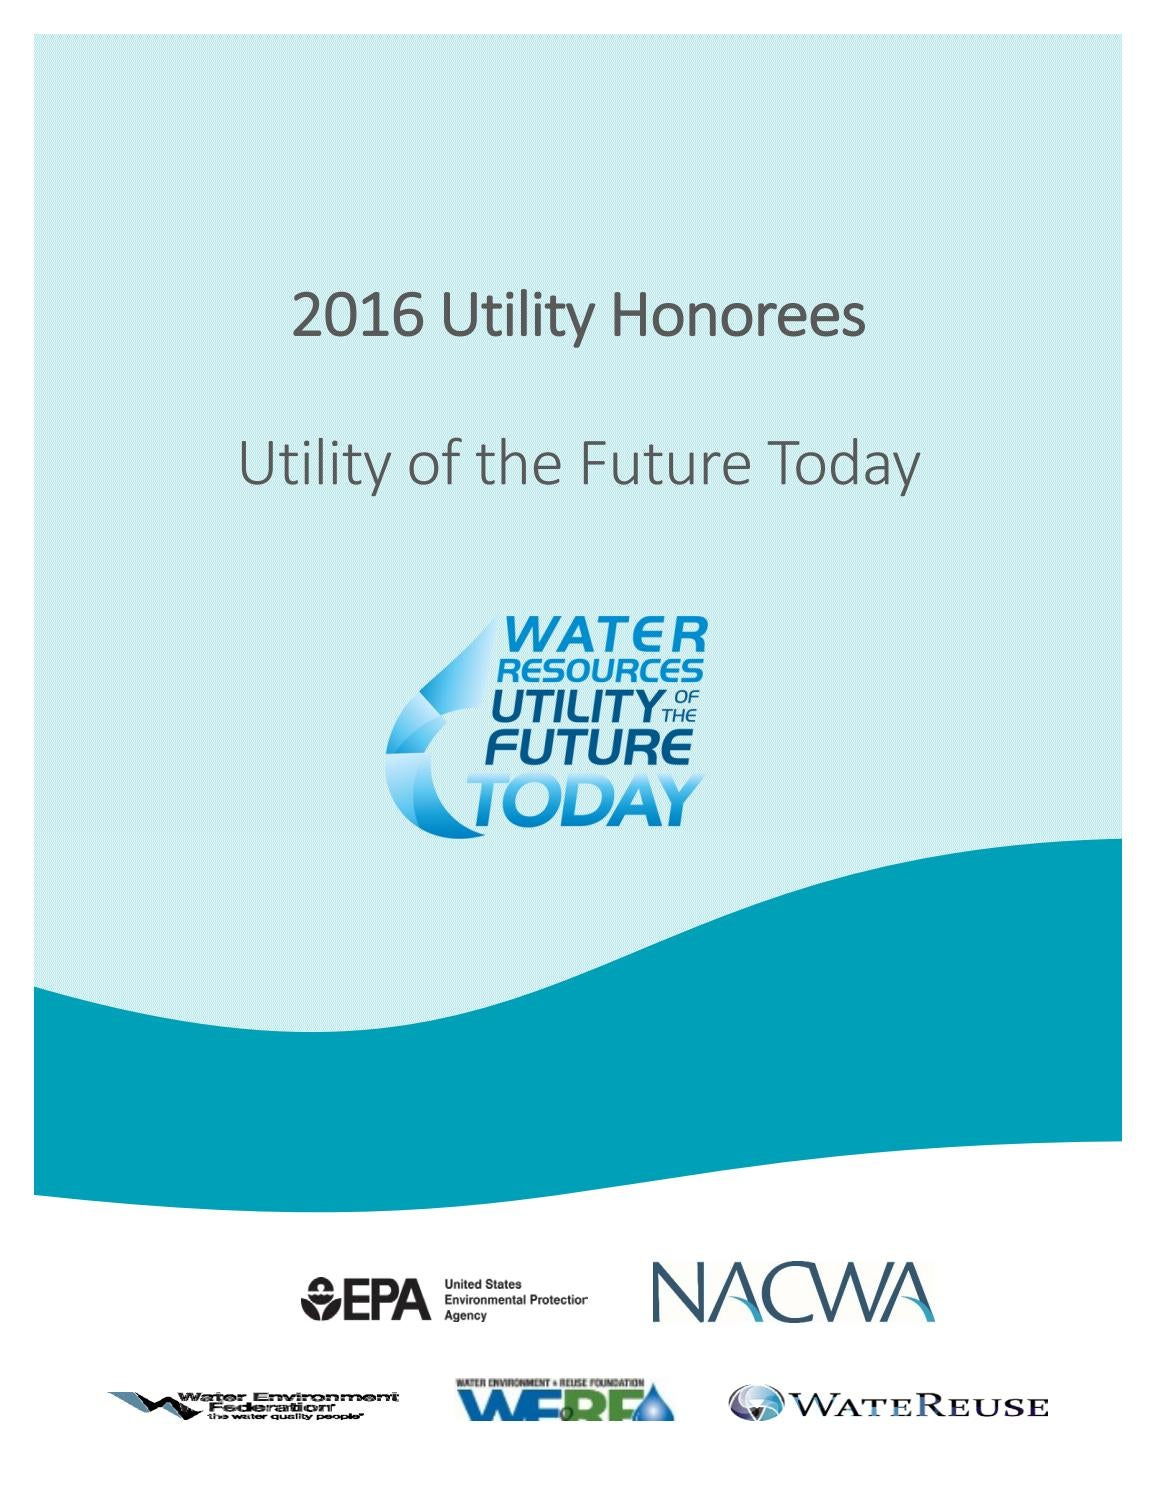 da4f461575a7 2016 UOTF Today Honorees by NACWA - issuu